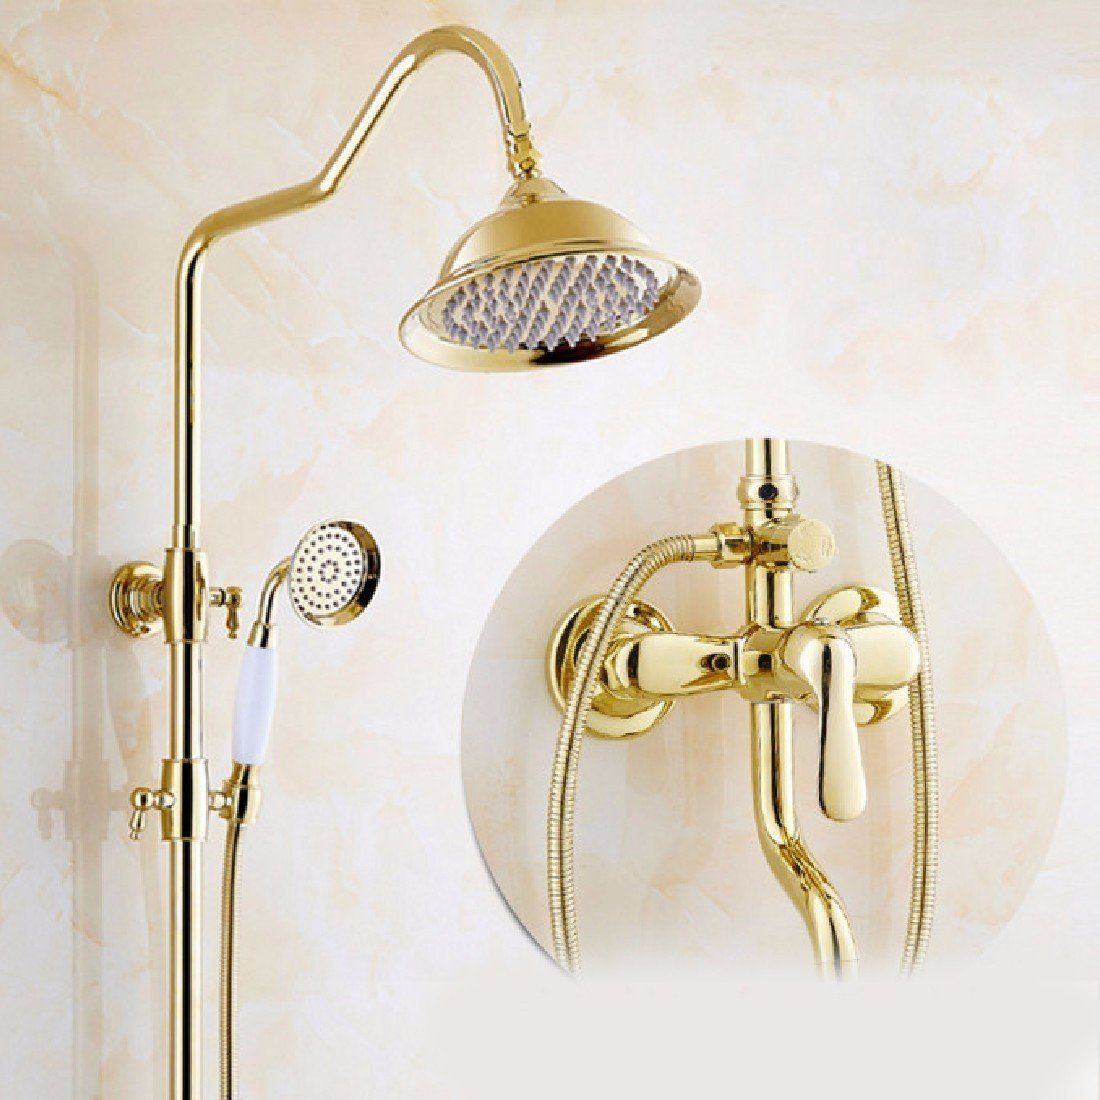 Bathroom Fixtures Cold And Hot Mixer Faucet Shower Tap Set Bathroom Antique Sprinkler Suit All Copper Vintage Antique Bronze Shower Faucet Shower Faucets